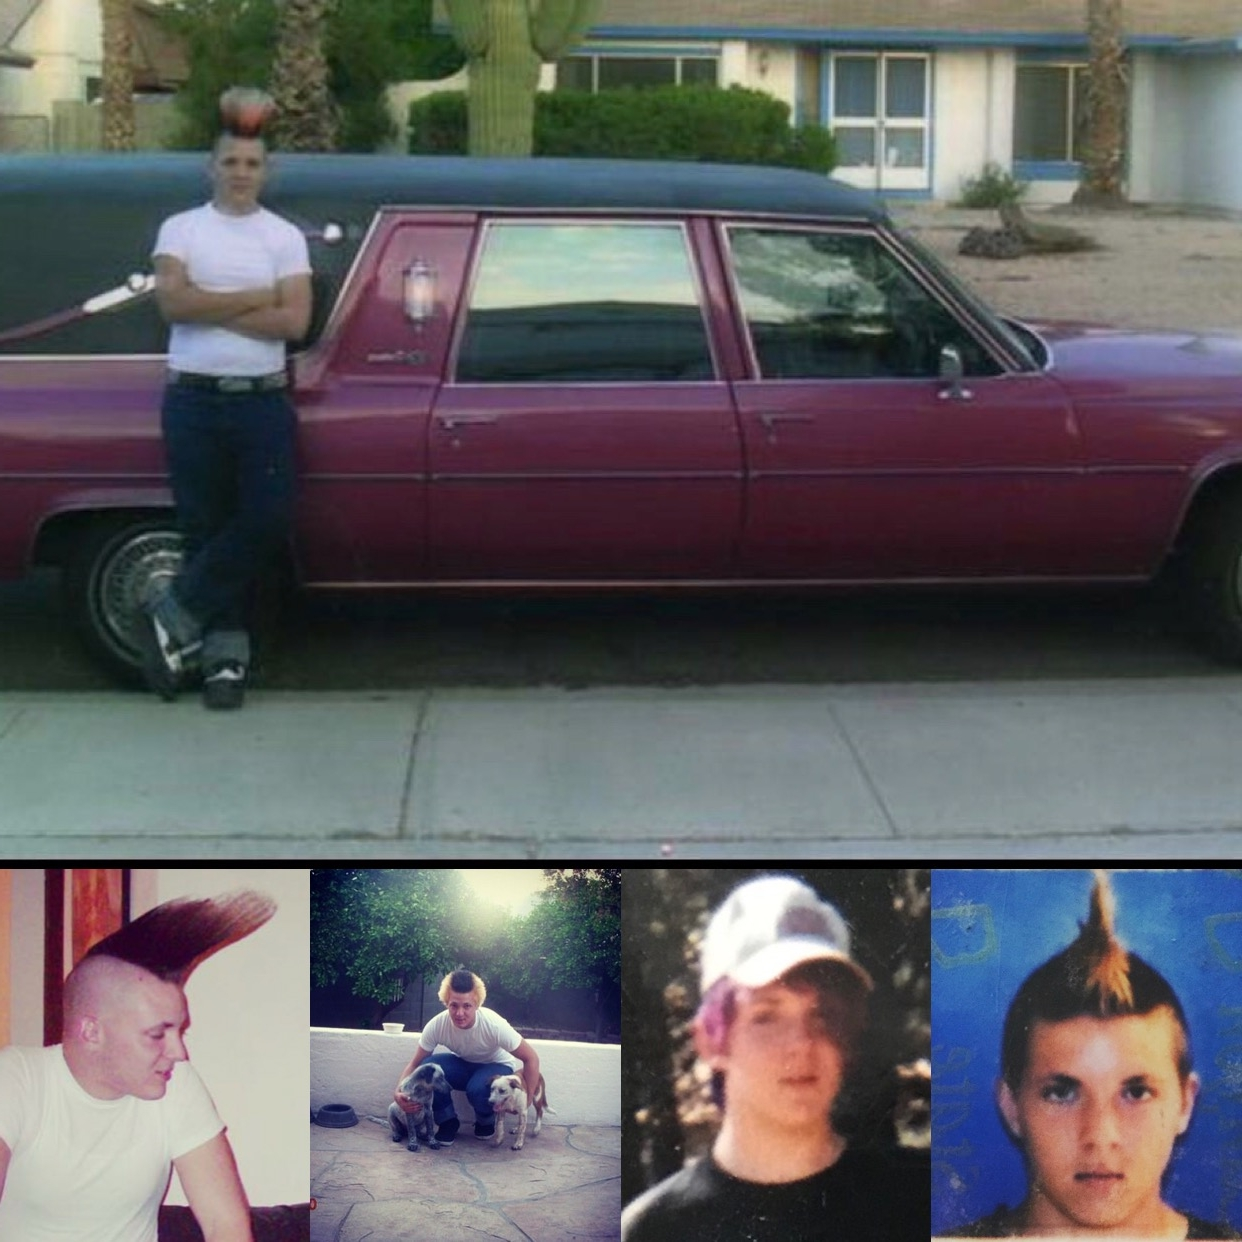 It got so much worse. Like, he drove a f***in hearse through college -